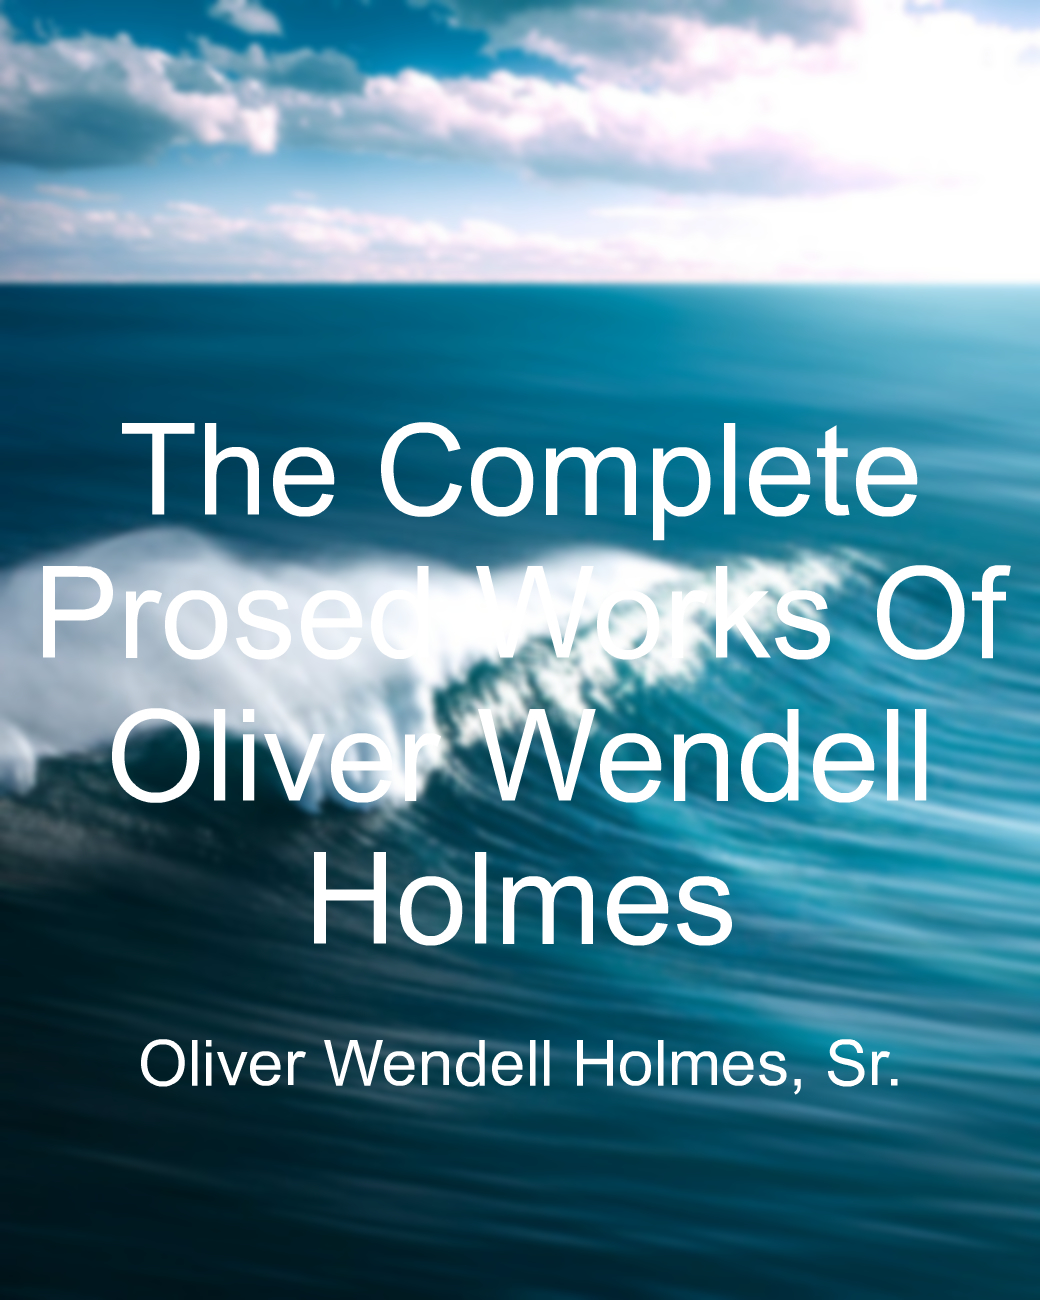 The Complete Prosed Works Of Oliver Wendell Holmes